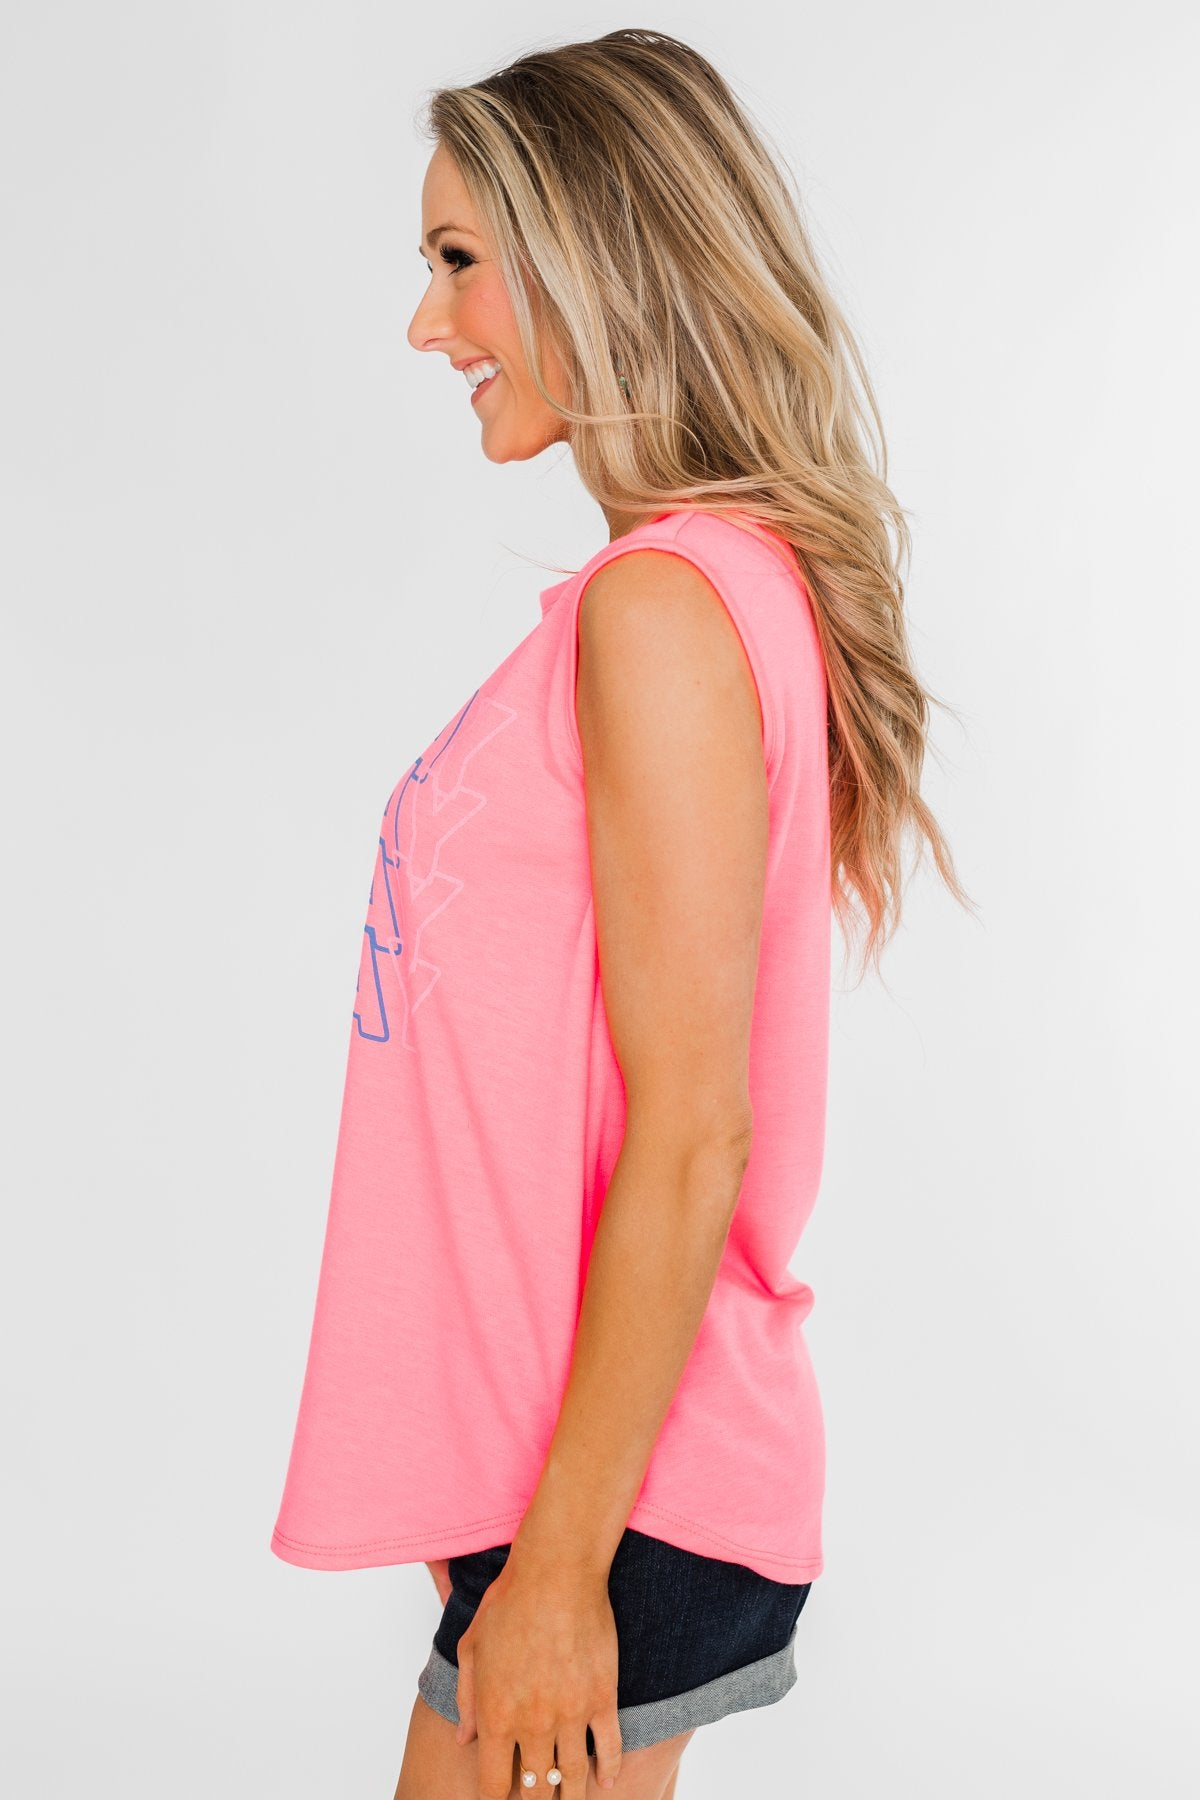 """Vacay"" Graphic Tank Top- Neon Pink"